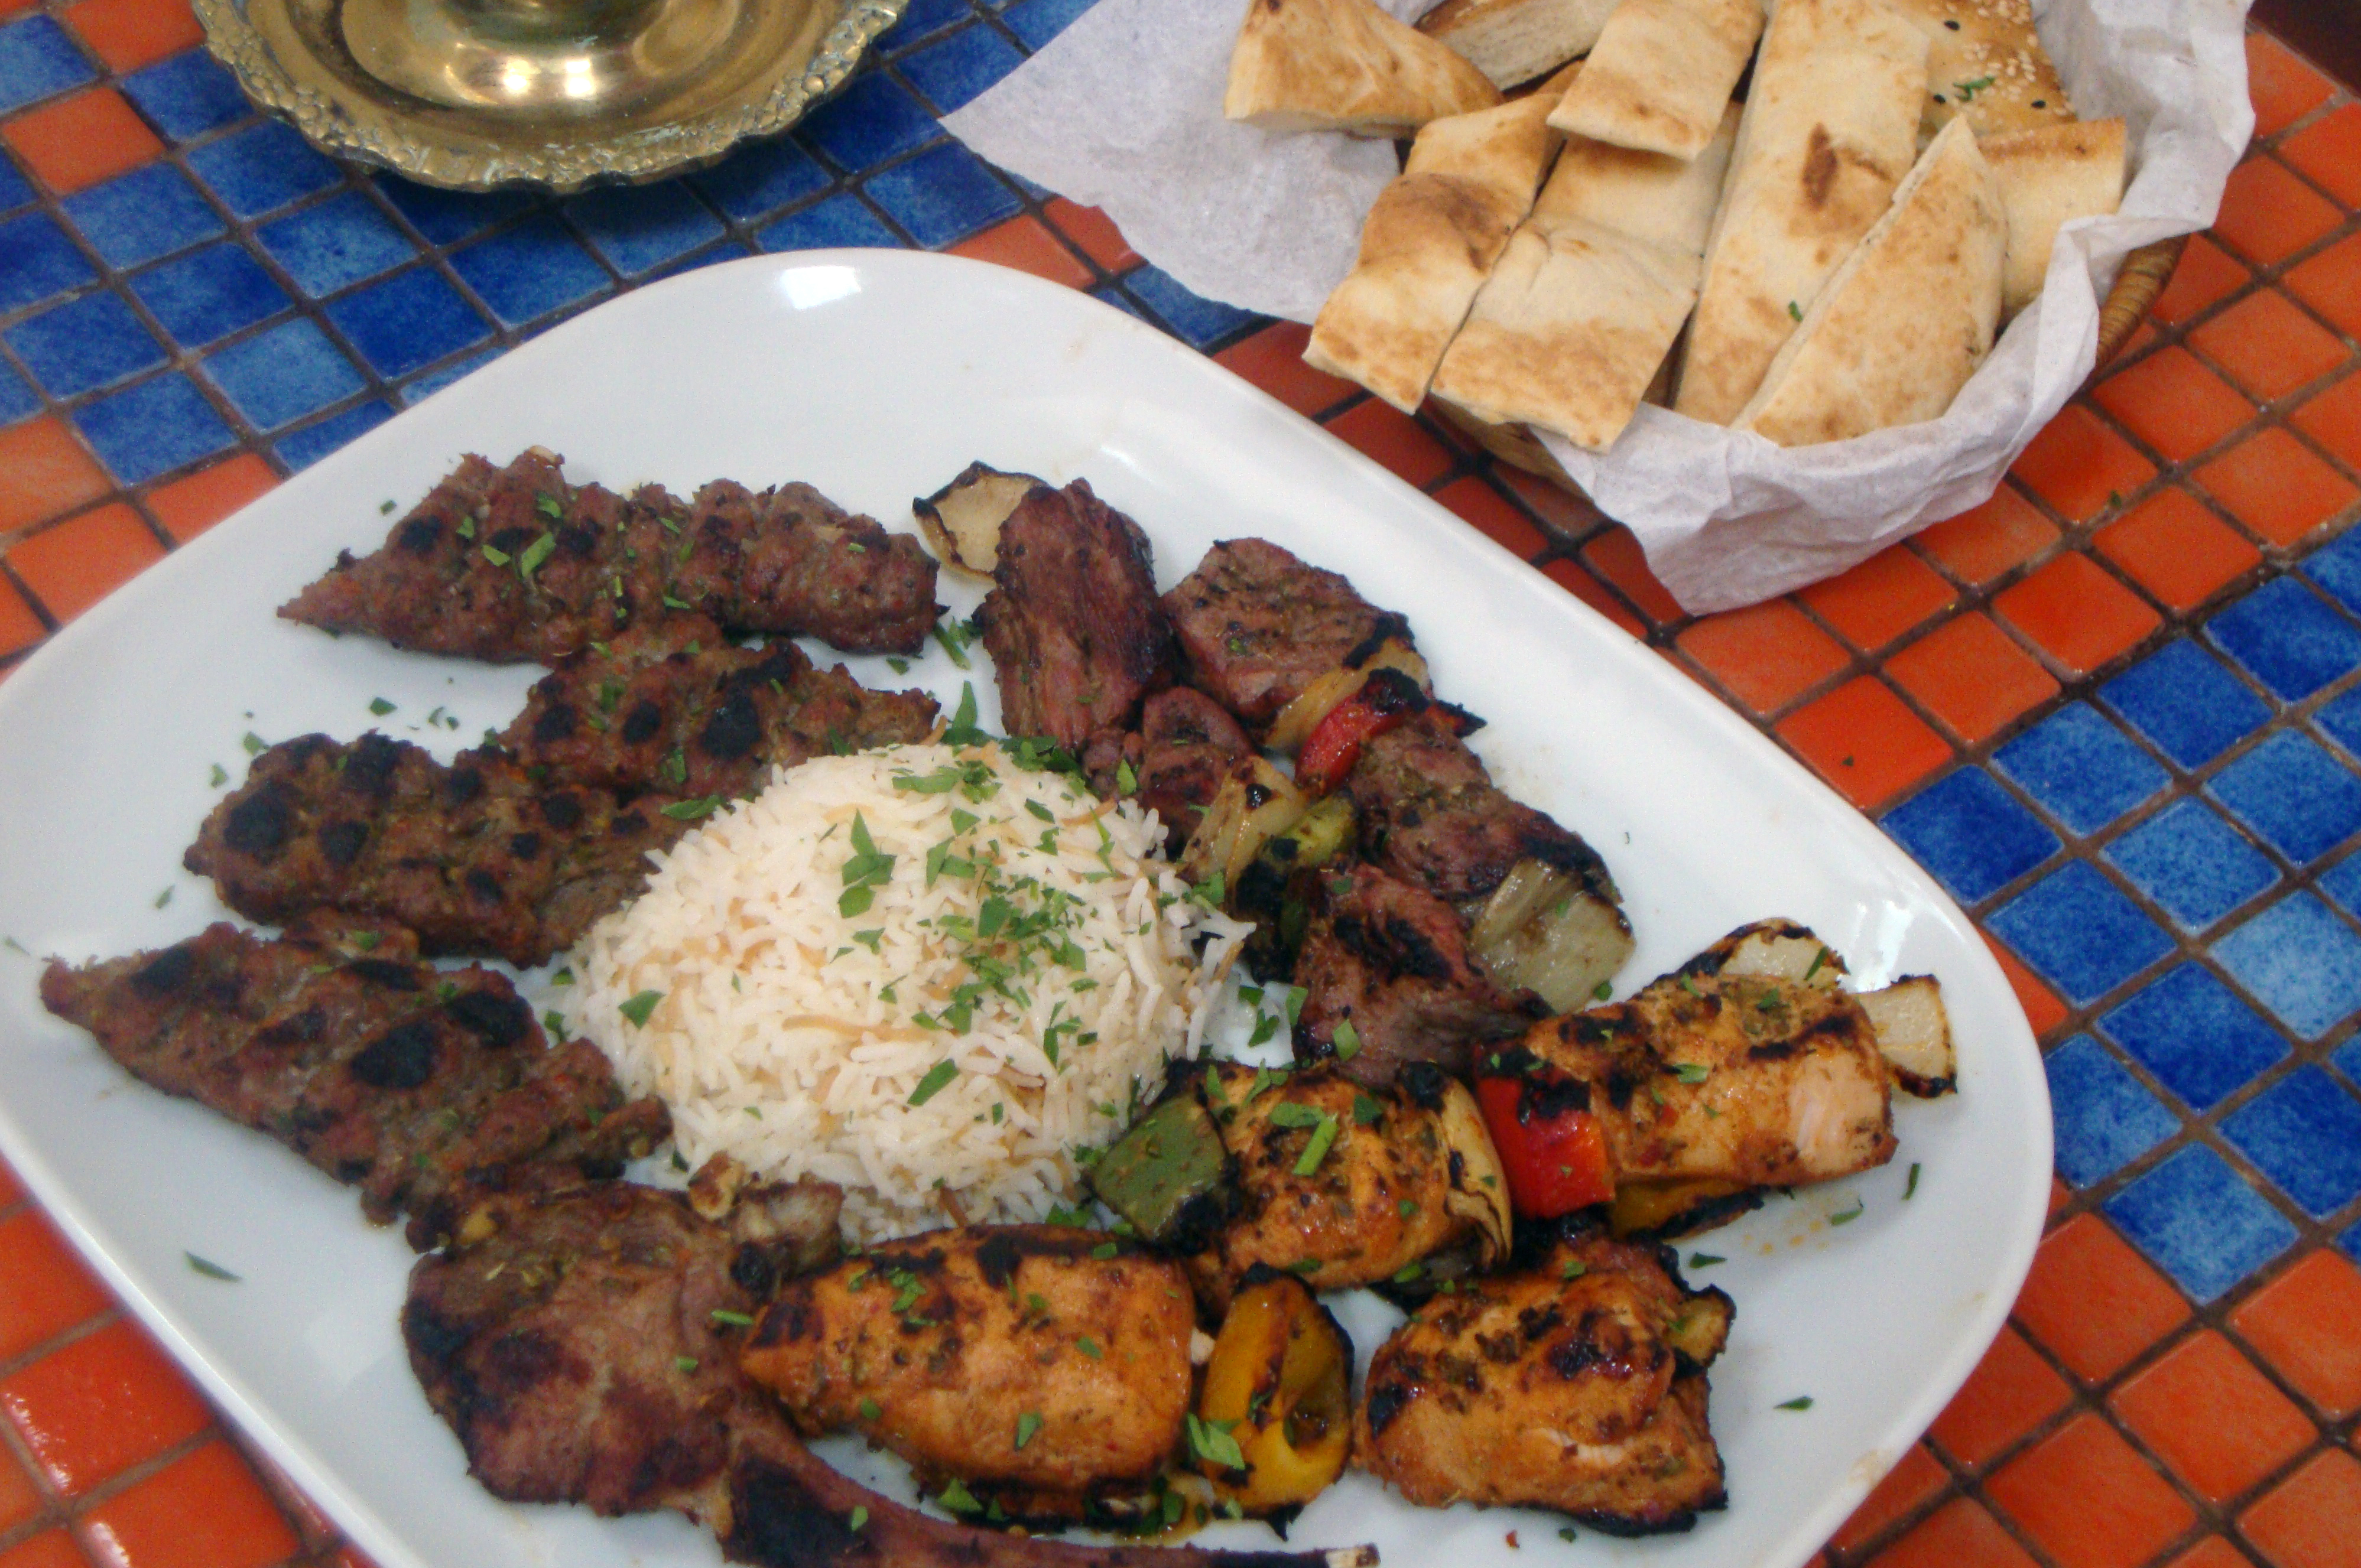 Grill lean meats and serve with salad and unbuttered naan. Photo: Nazma Lakhani